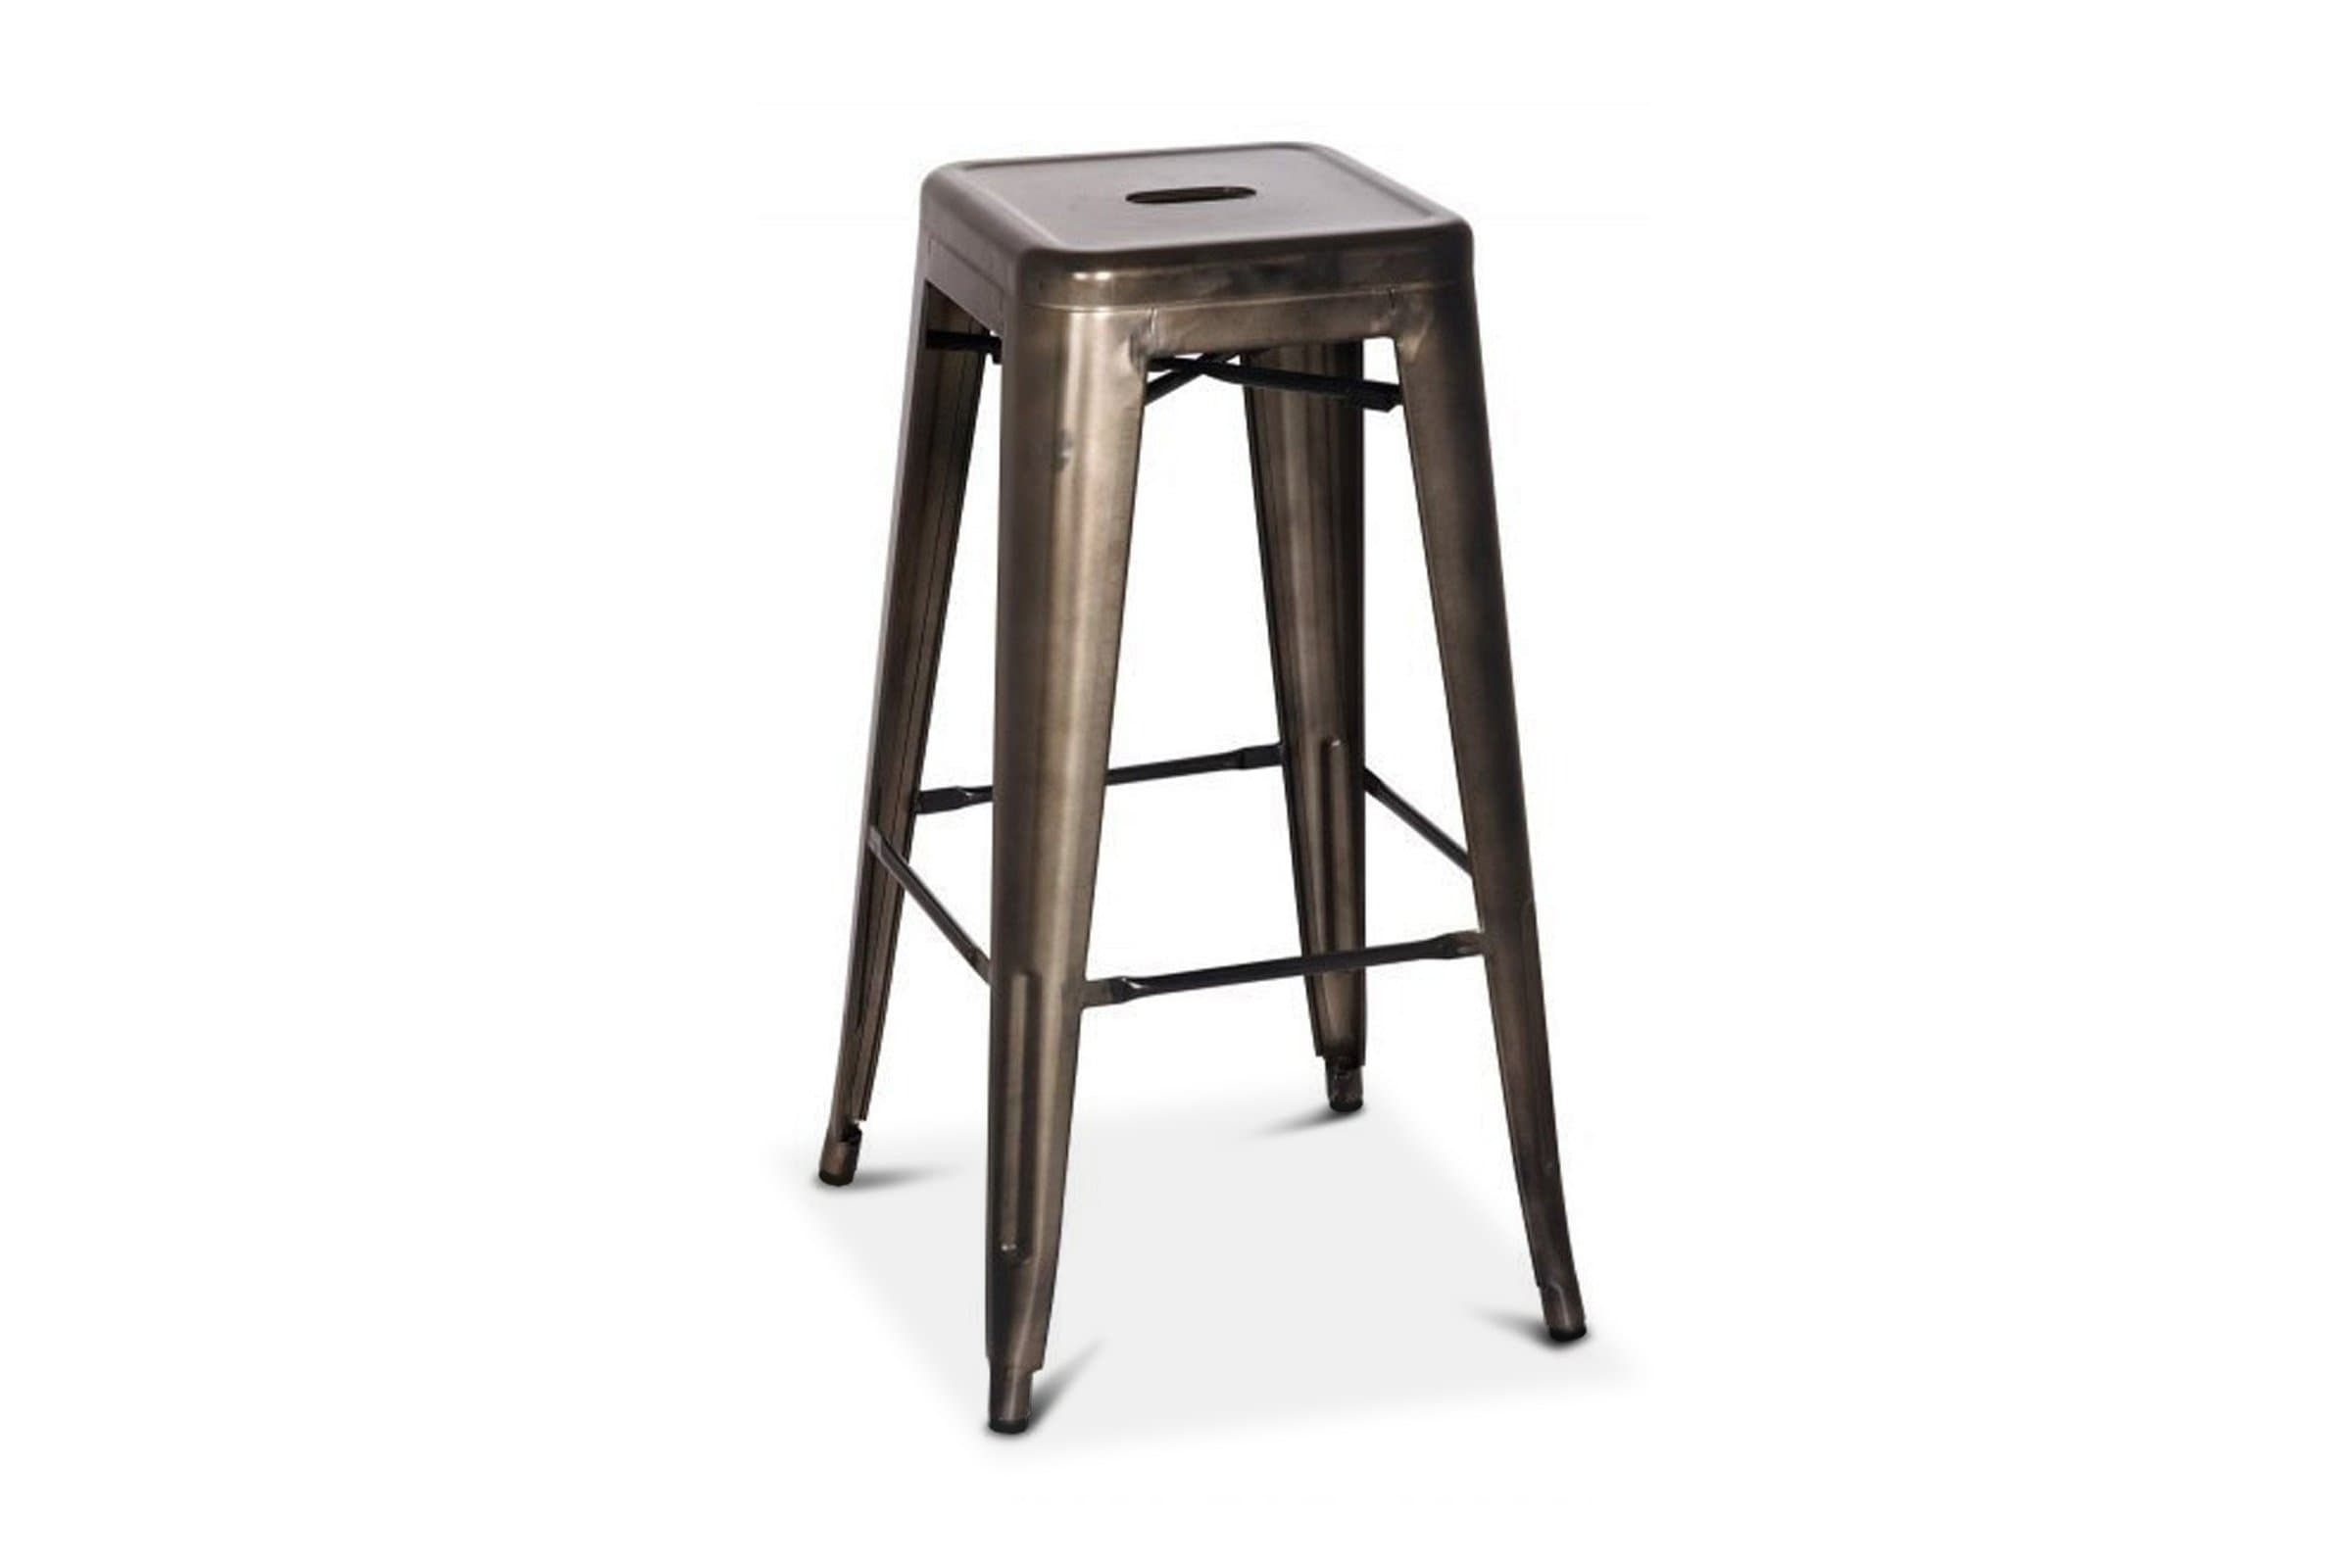 Oxford Metal Bar Stool GUNMETAL - SET OF 4